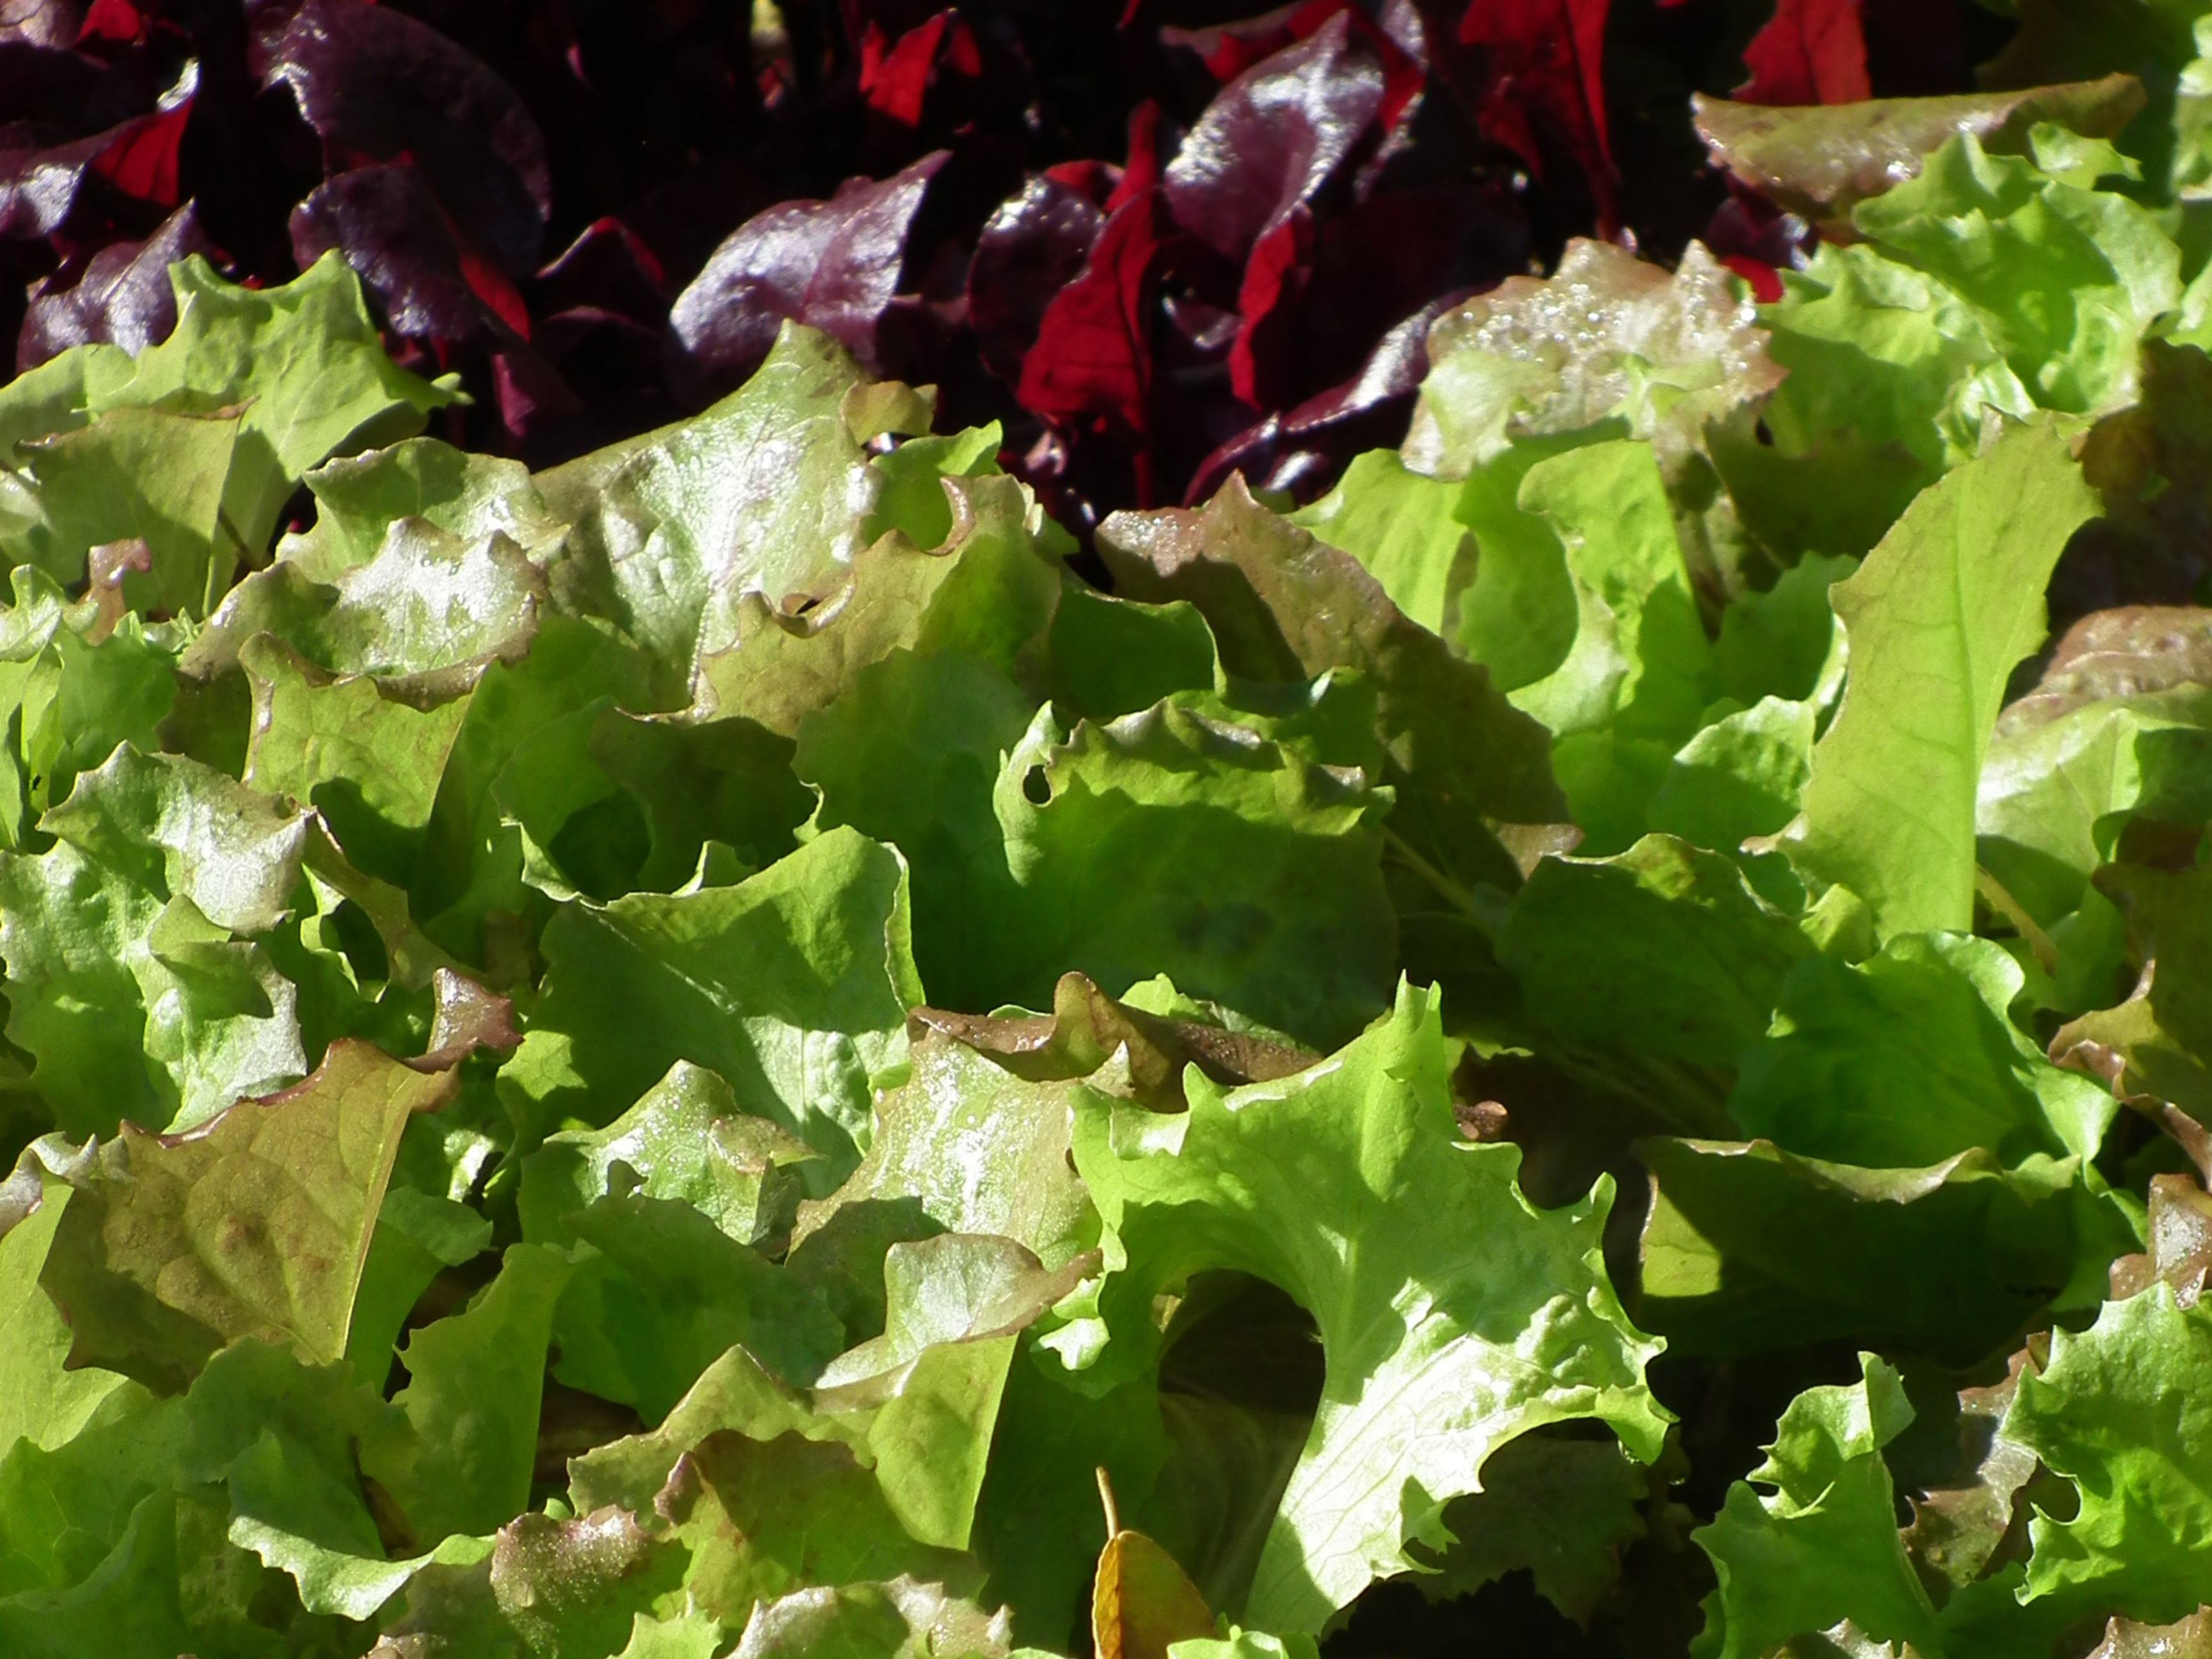 mixed green and red leaf lettuces